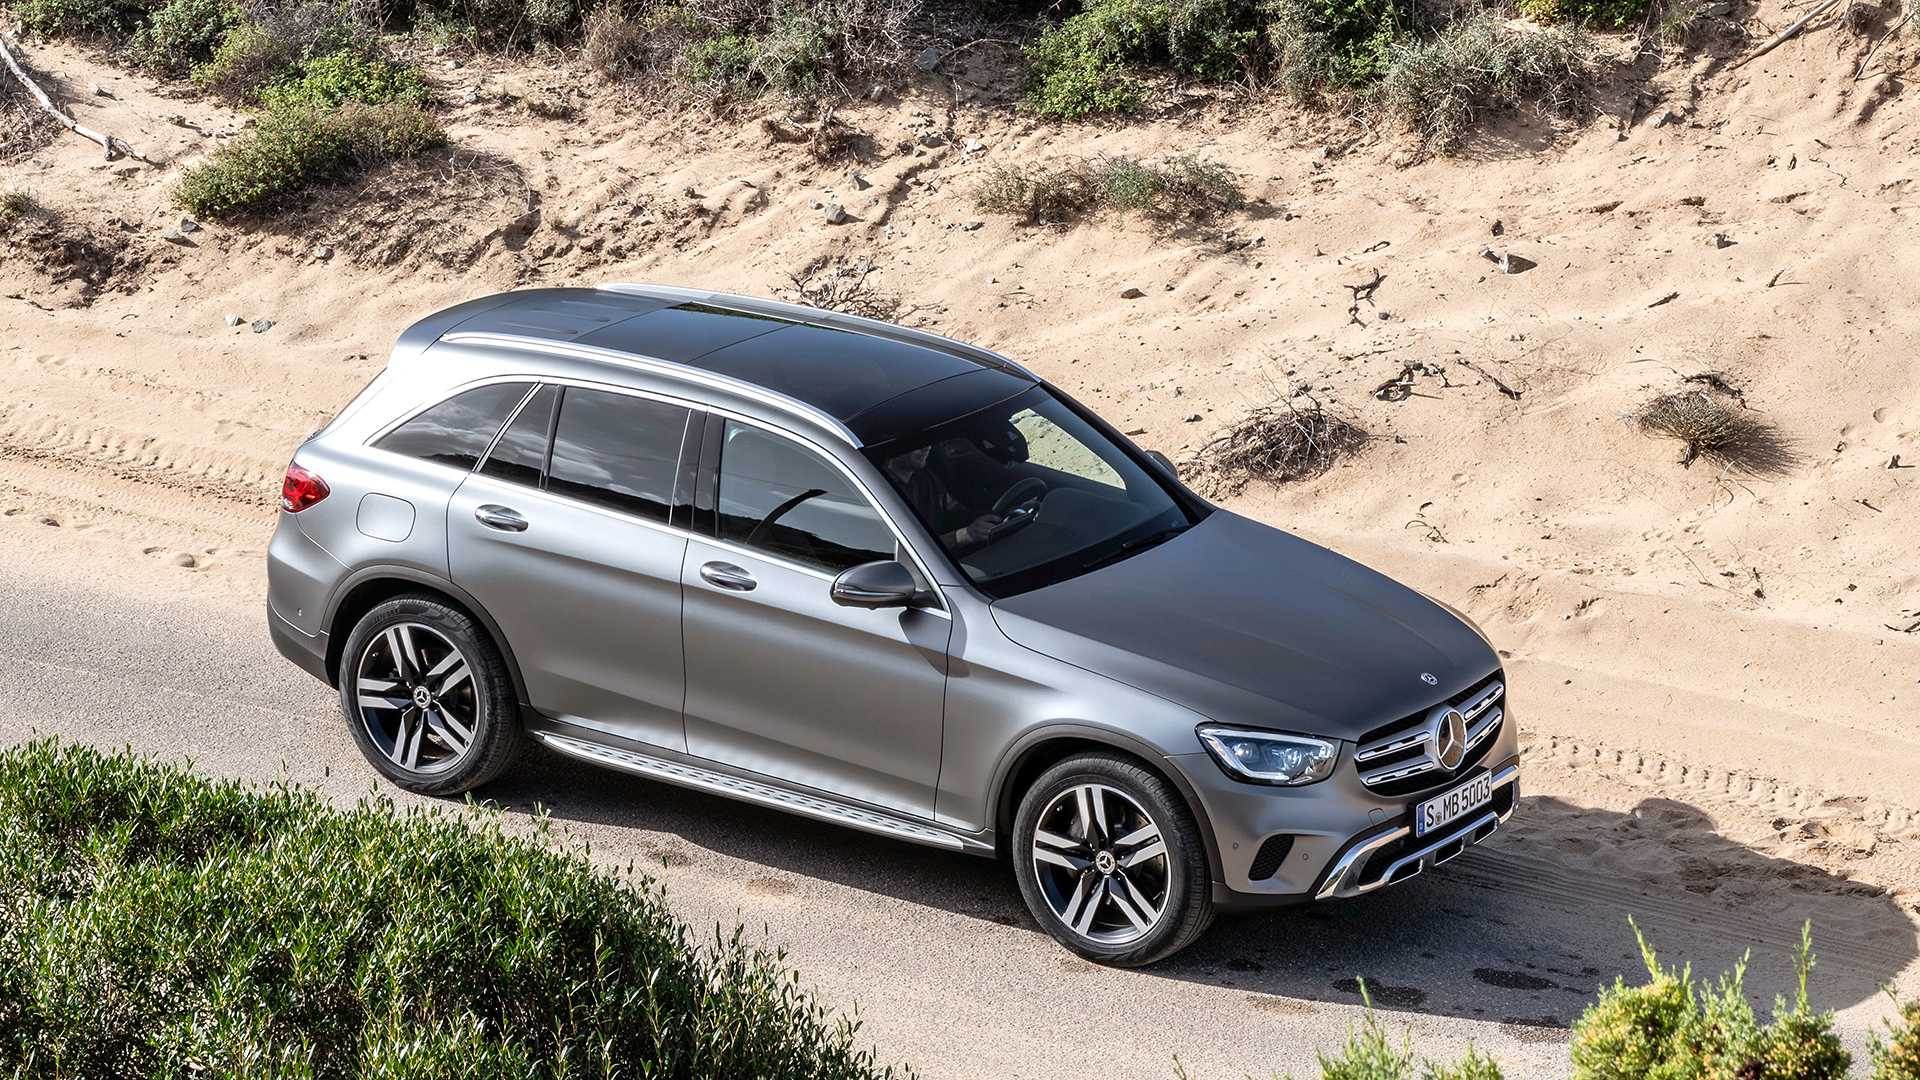 mercedes-benz-glc-2019 (7).jpg